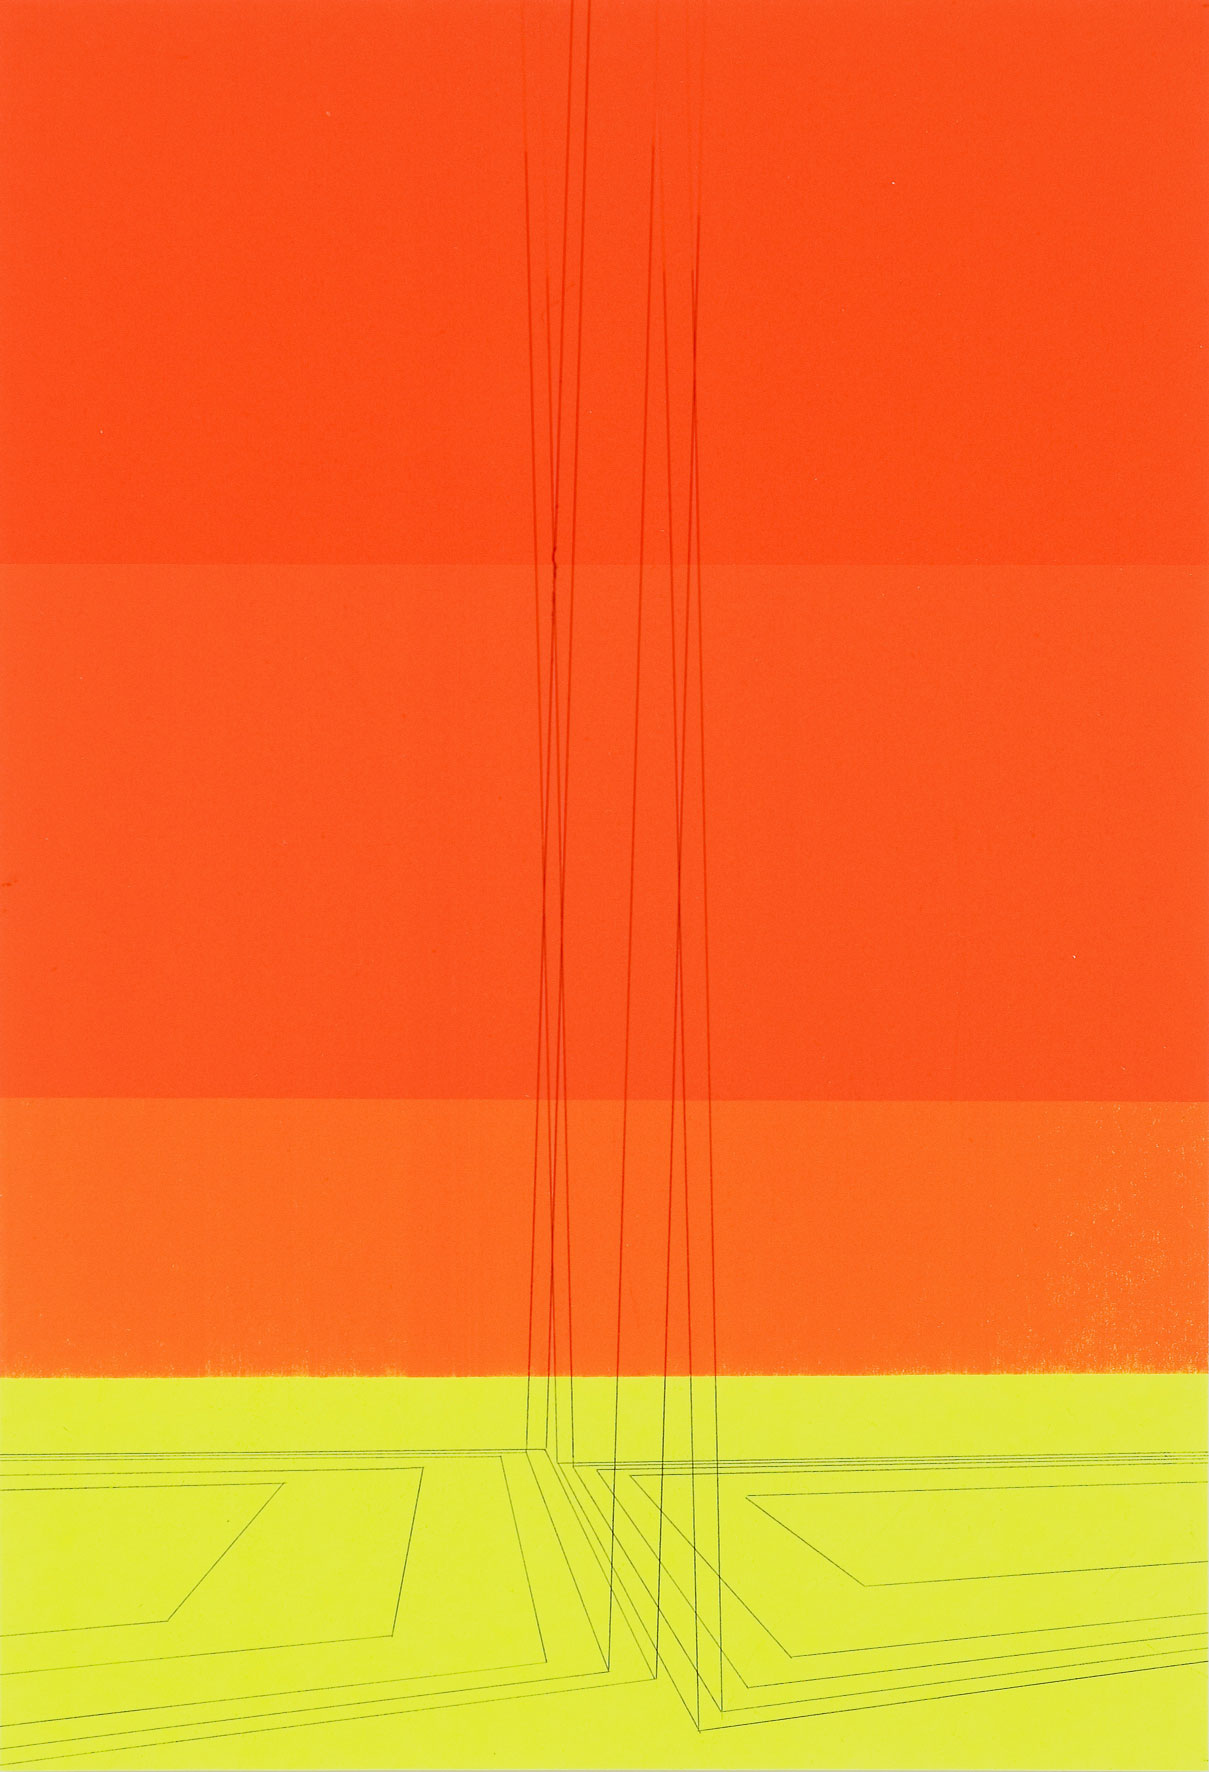 Pyre Lines on Orange from Yellow Ground, graphite transfer on screenprint, 12 x 17.5 inches